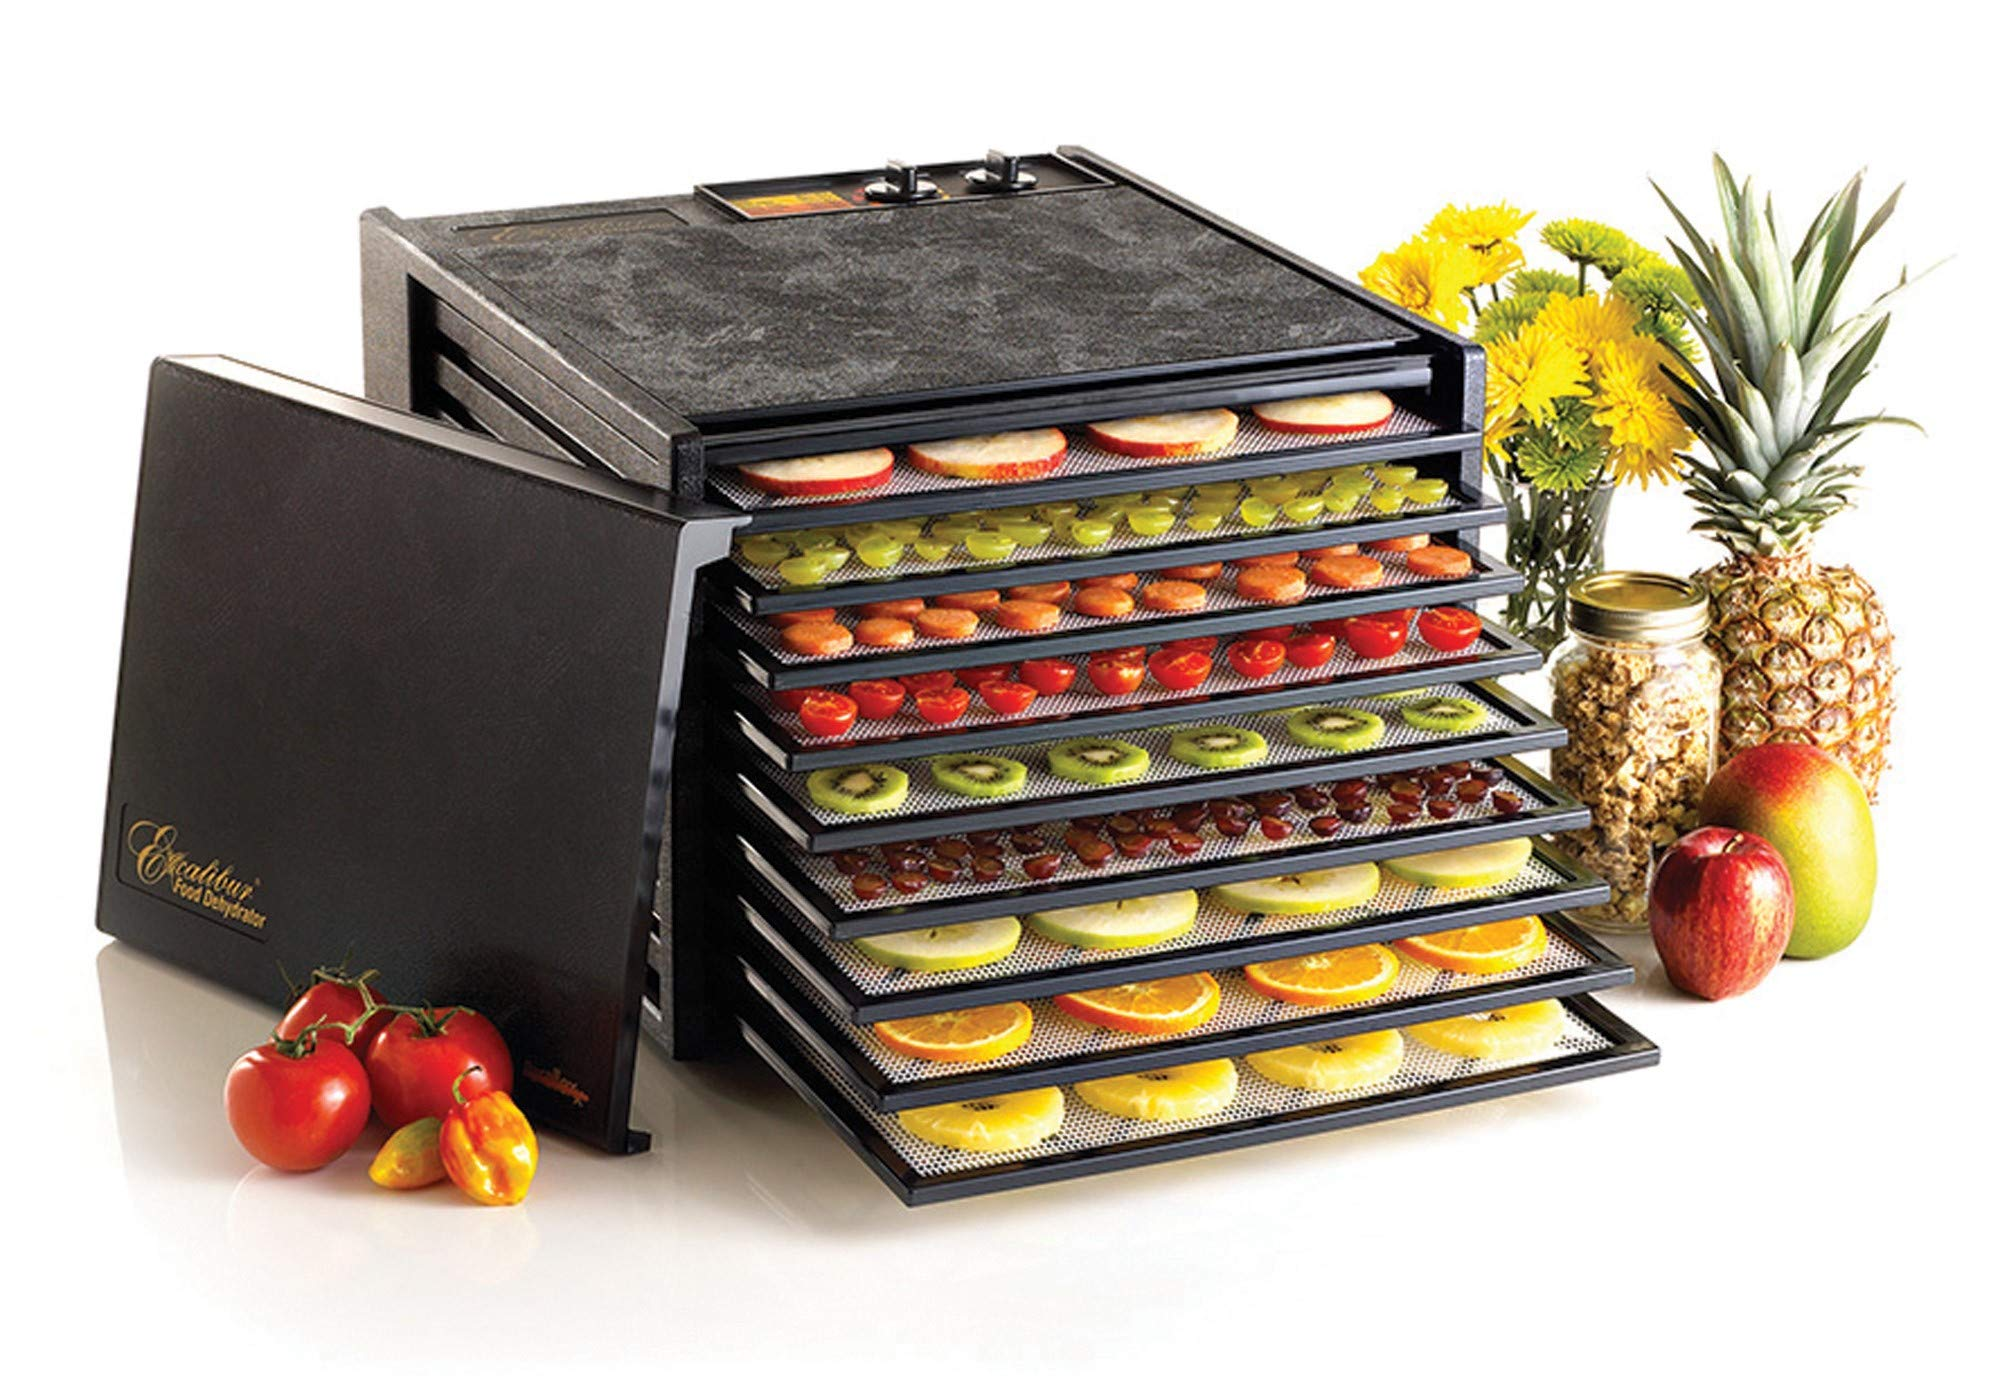 Excalibur 3926TB 9-Tray Electric Food Dehydrator with Temperature Settings and 26-hour Timer Automatic Shut Off for Faster and Efficient Drying Includes Guide to Dehydration Made in USA, 9-Tray, Black by Excalibur